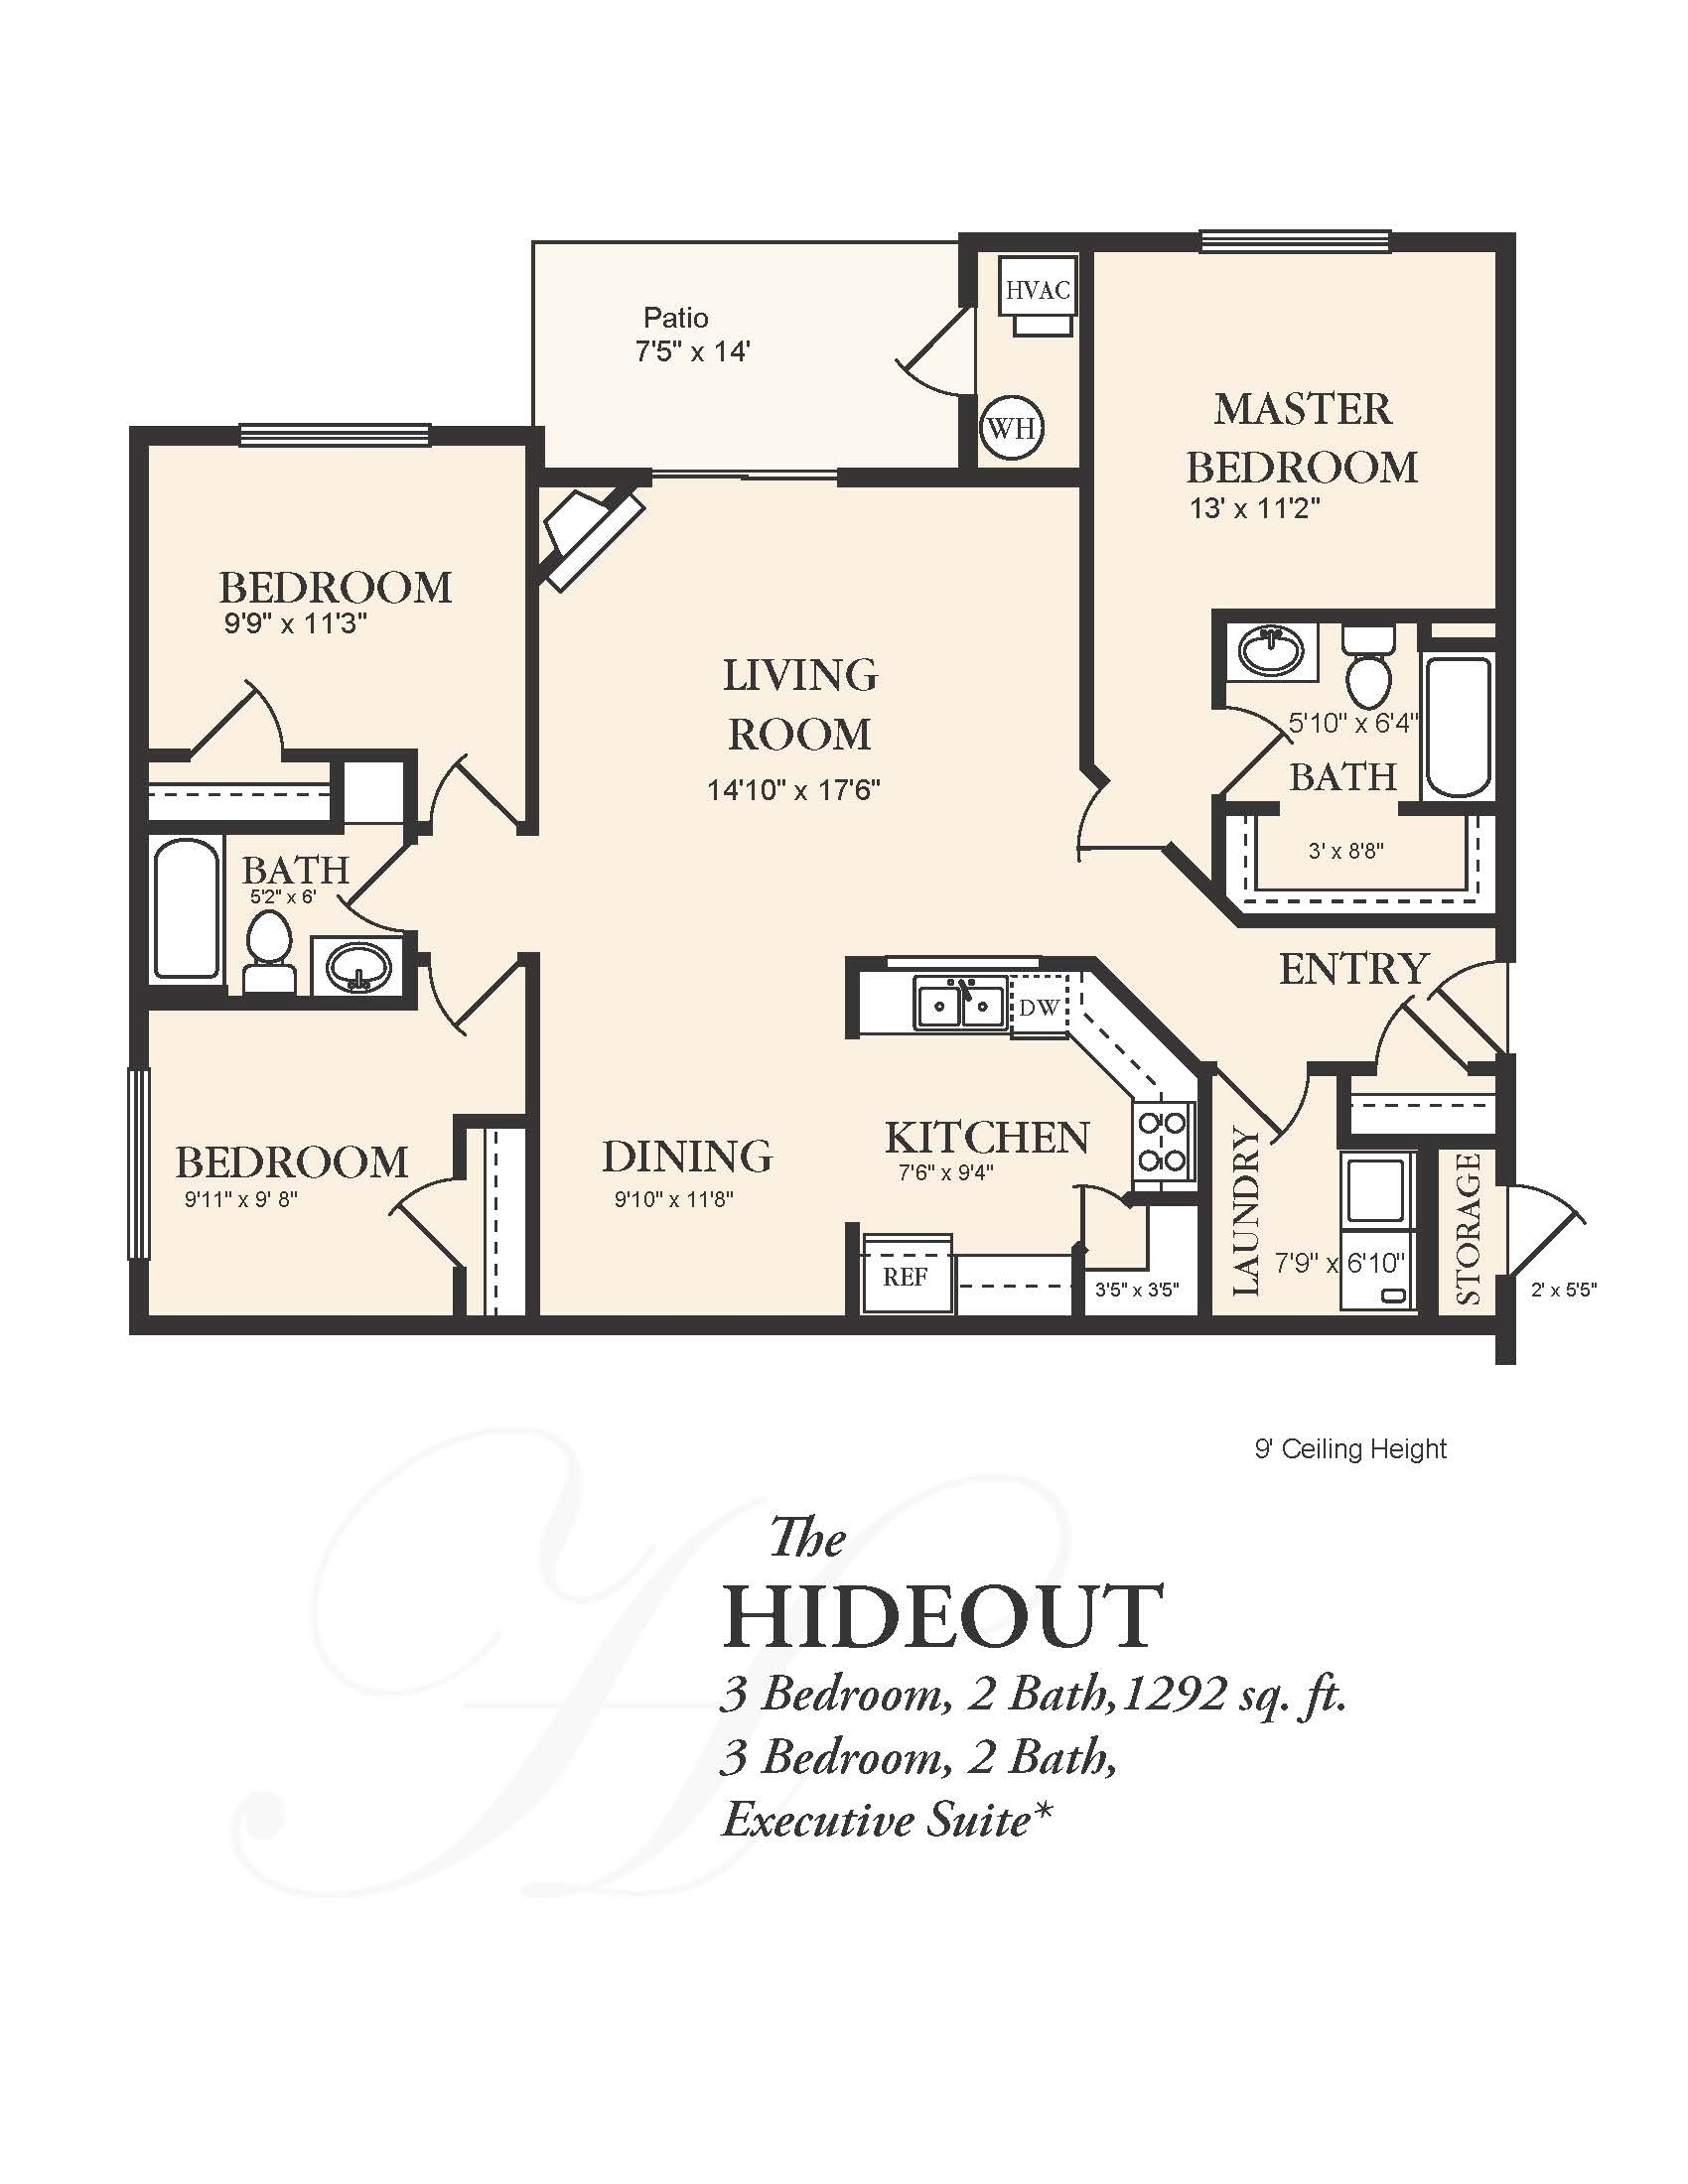 View floor plan image of 3 Bedroom 2 Bath apartment available now